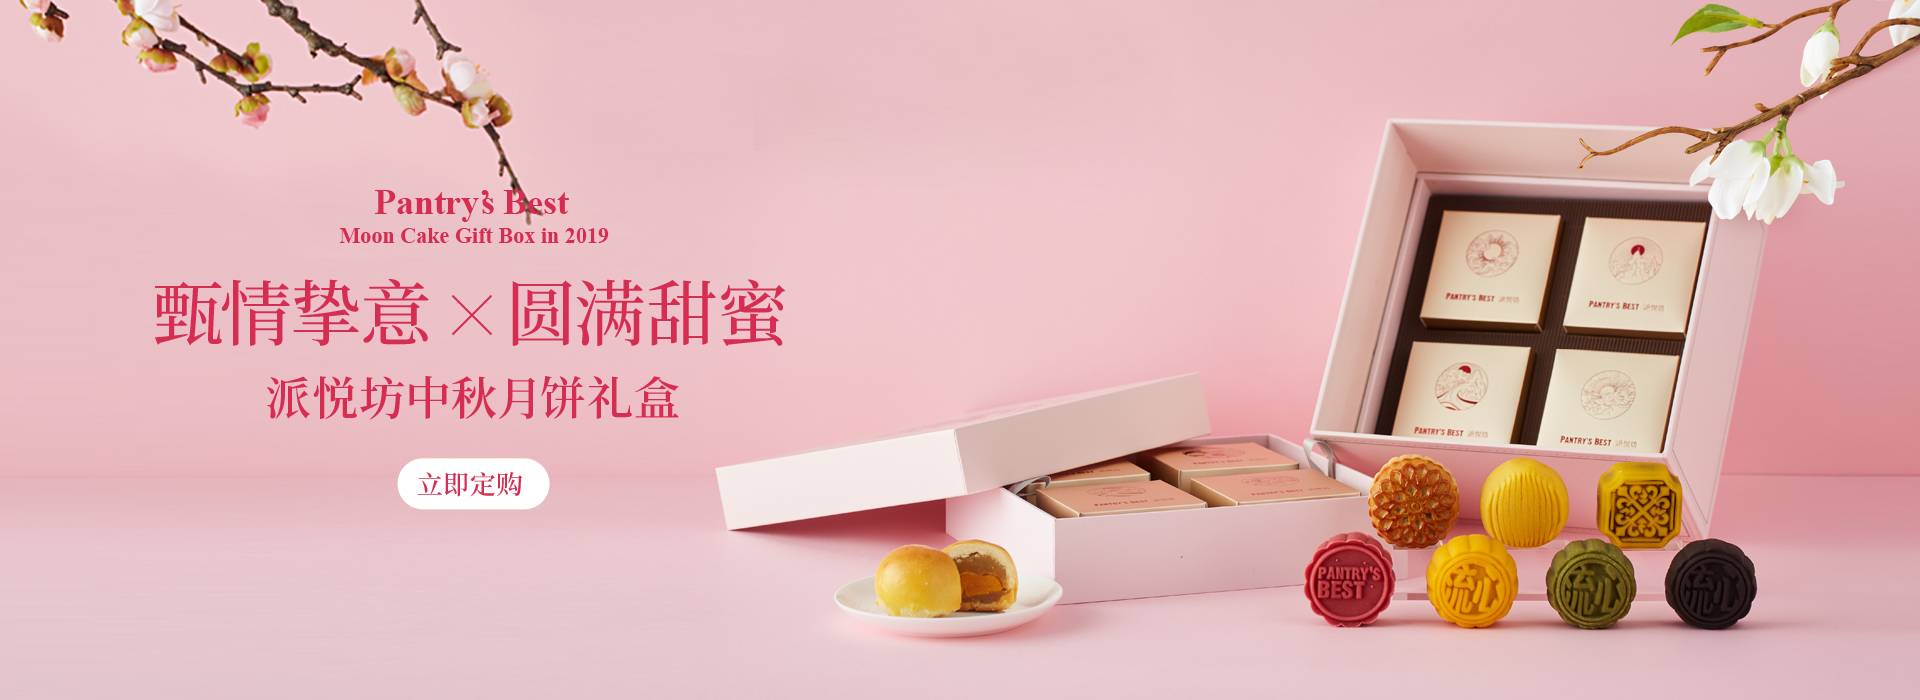 "Pantry's Best 2019 ""Senses"" Moon Cake Gift Box (6 Flavors)"